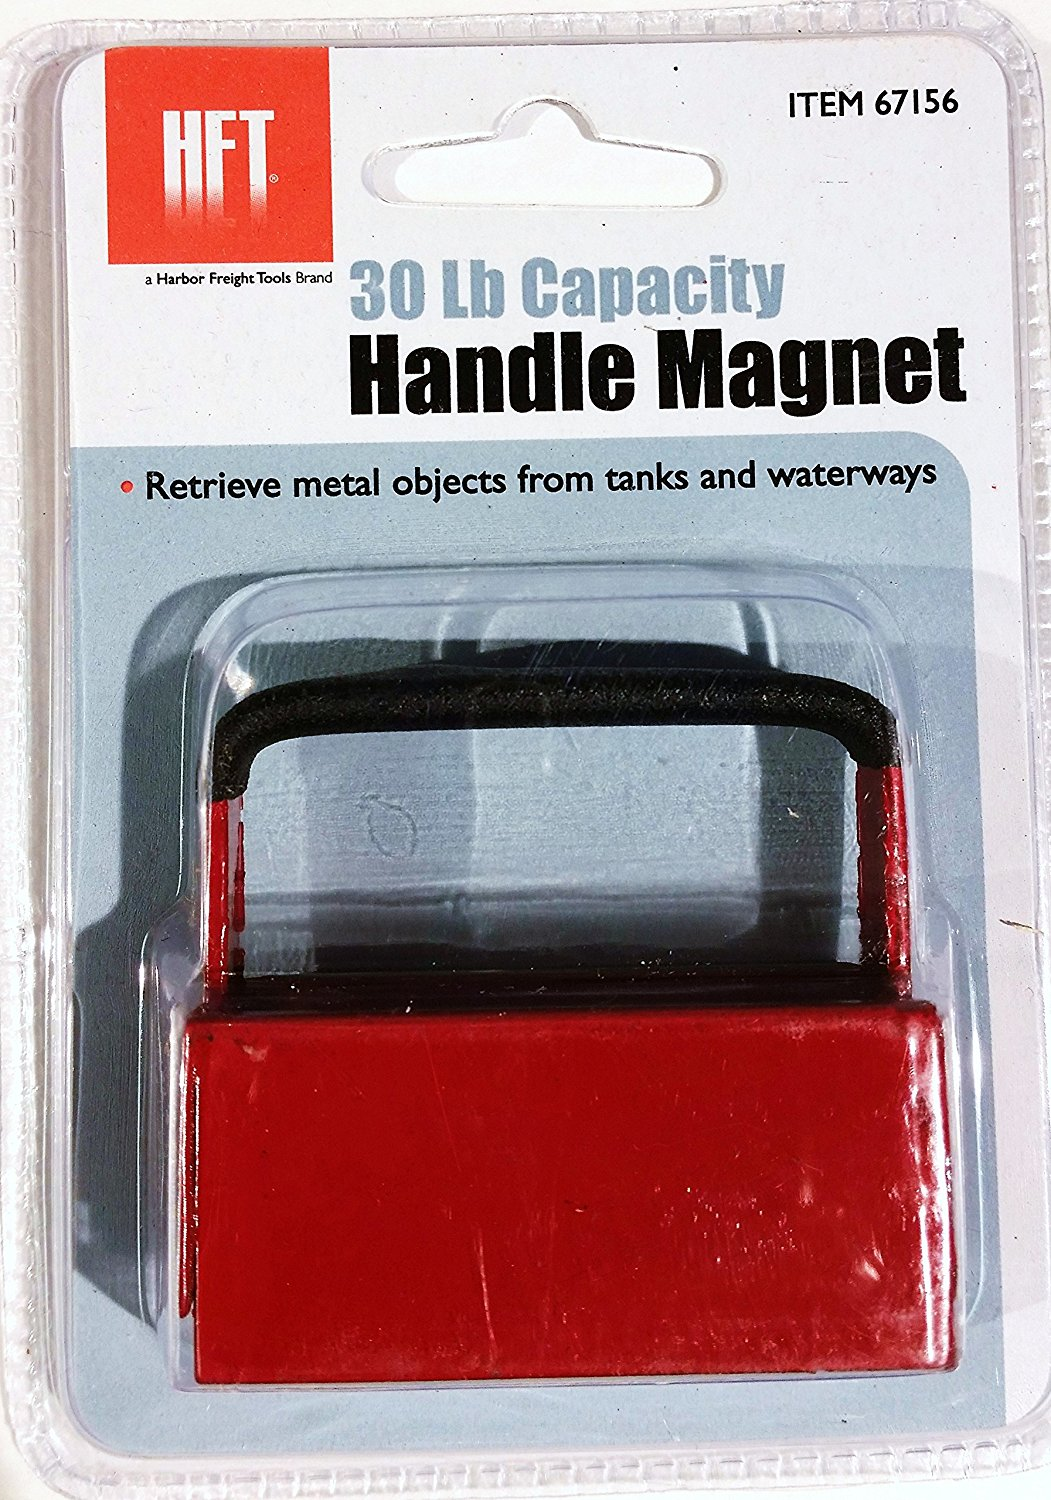 harbor freight tools 30 lb capacity powerful handle magnet retrieve metal objects from tanks and waterways by hft walmart com